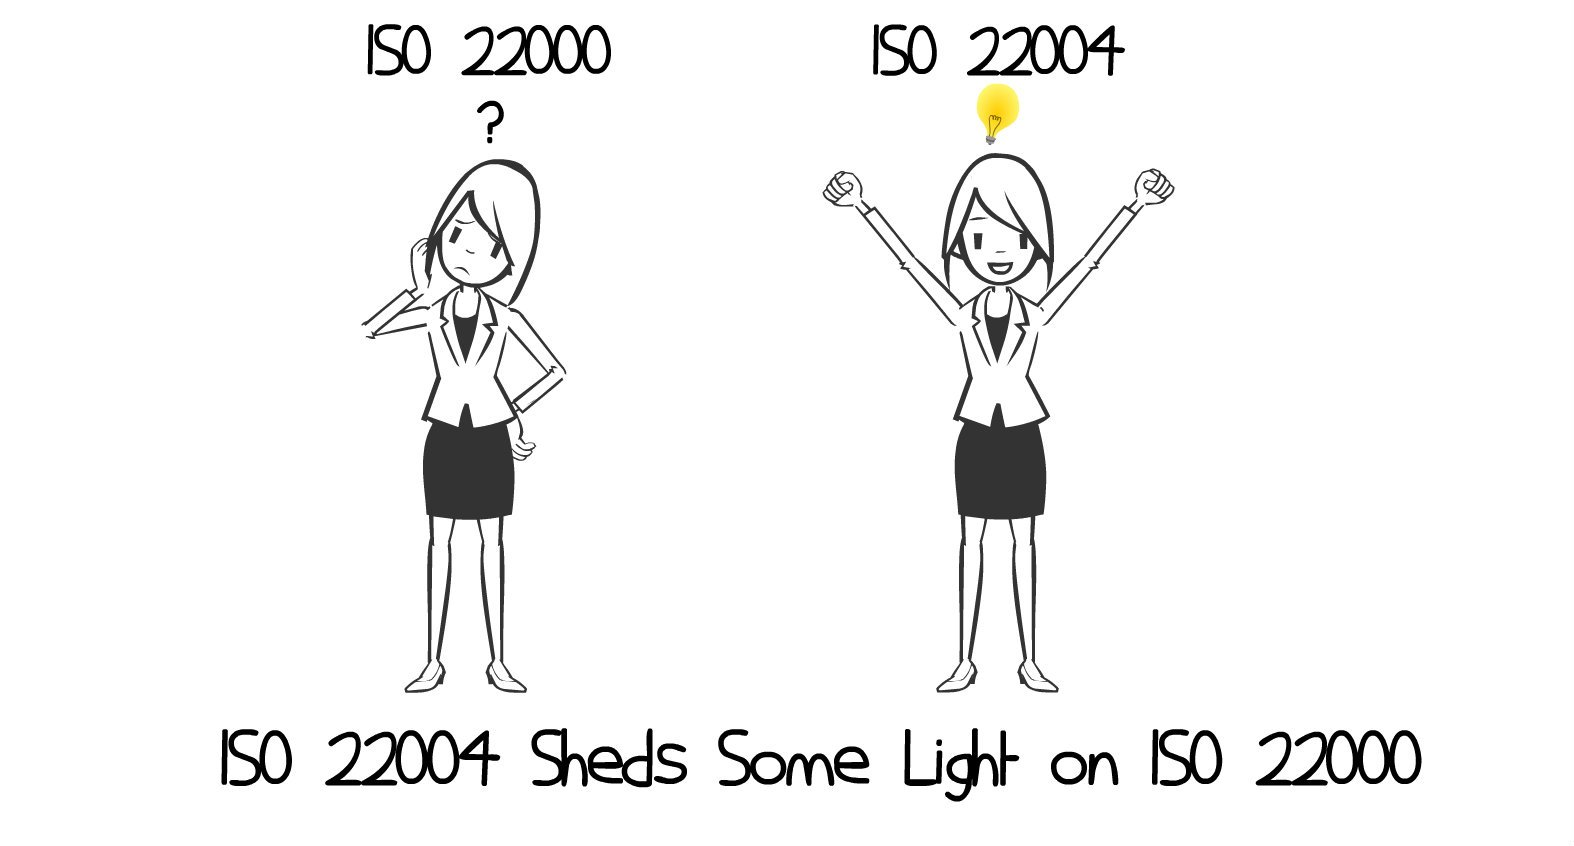 ISO 22004 Sheds Some Light on ISO 22000